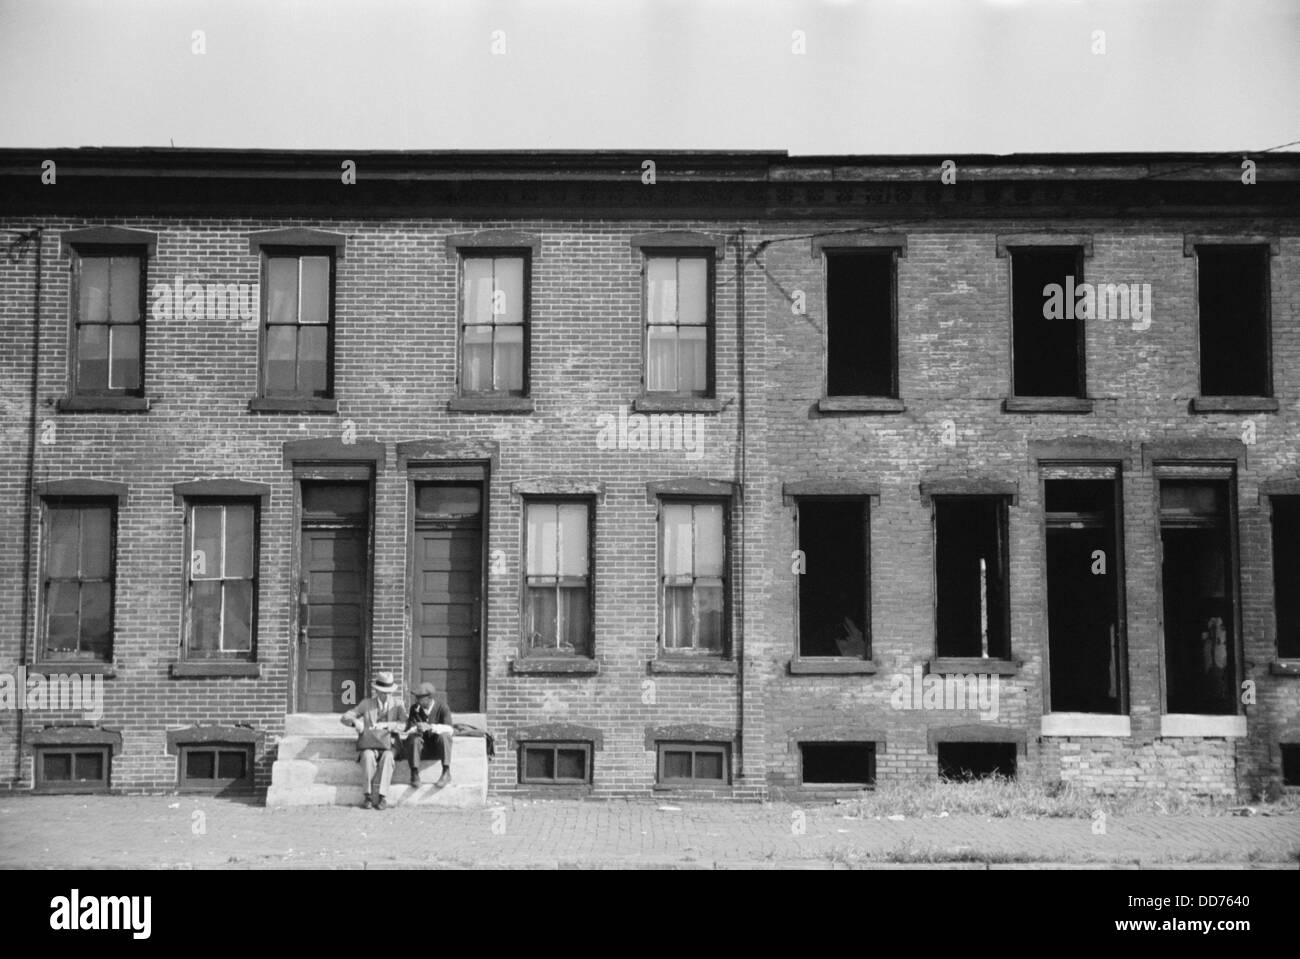 Factory workers' homes, Camden, New Jersey, Oct. 1938. Occupied residences are next to a derelict building. - Stock Image